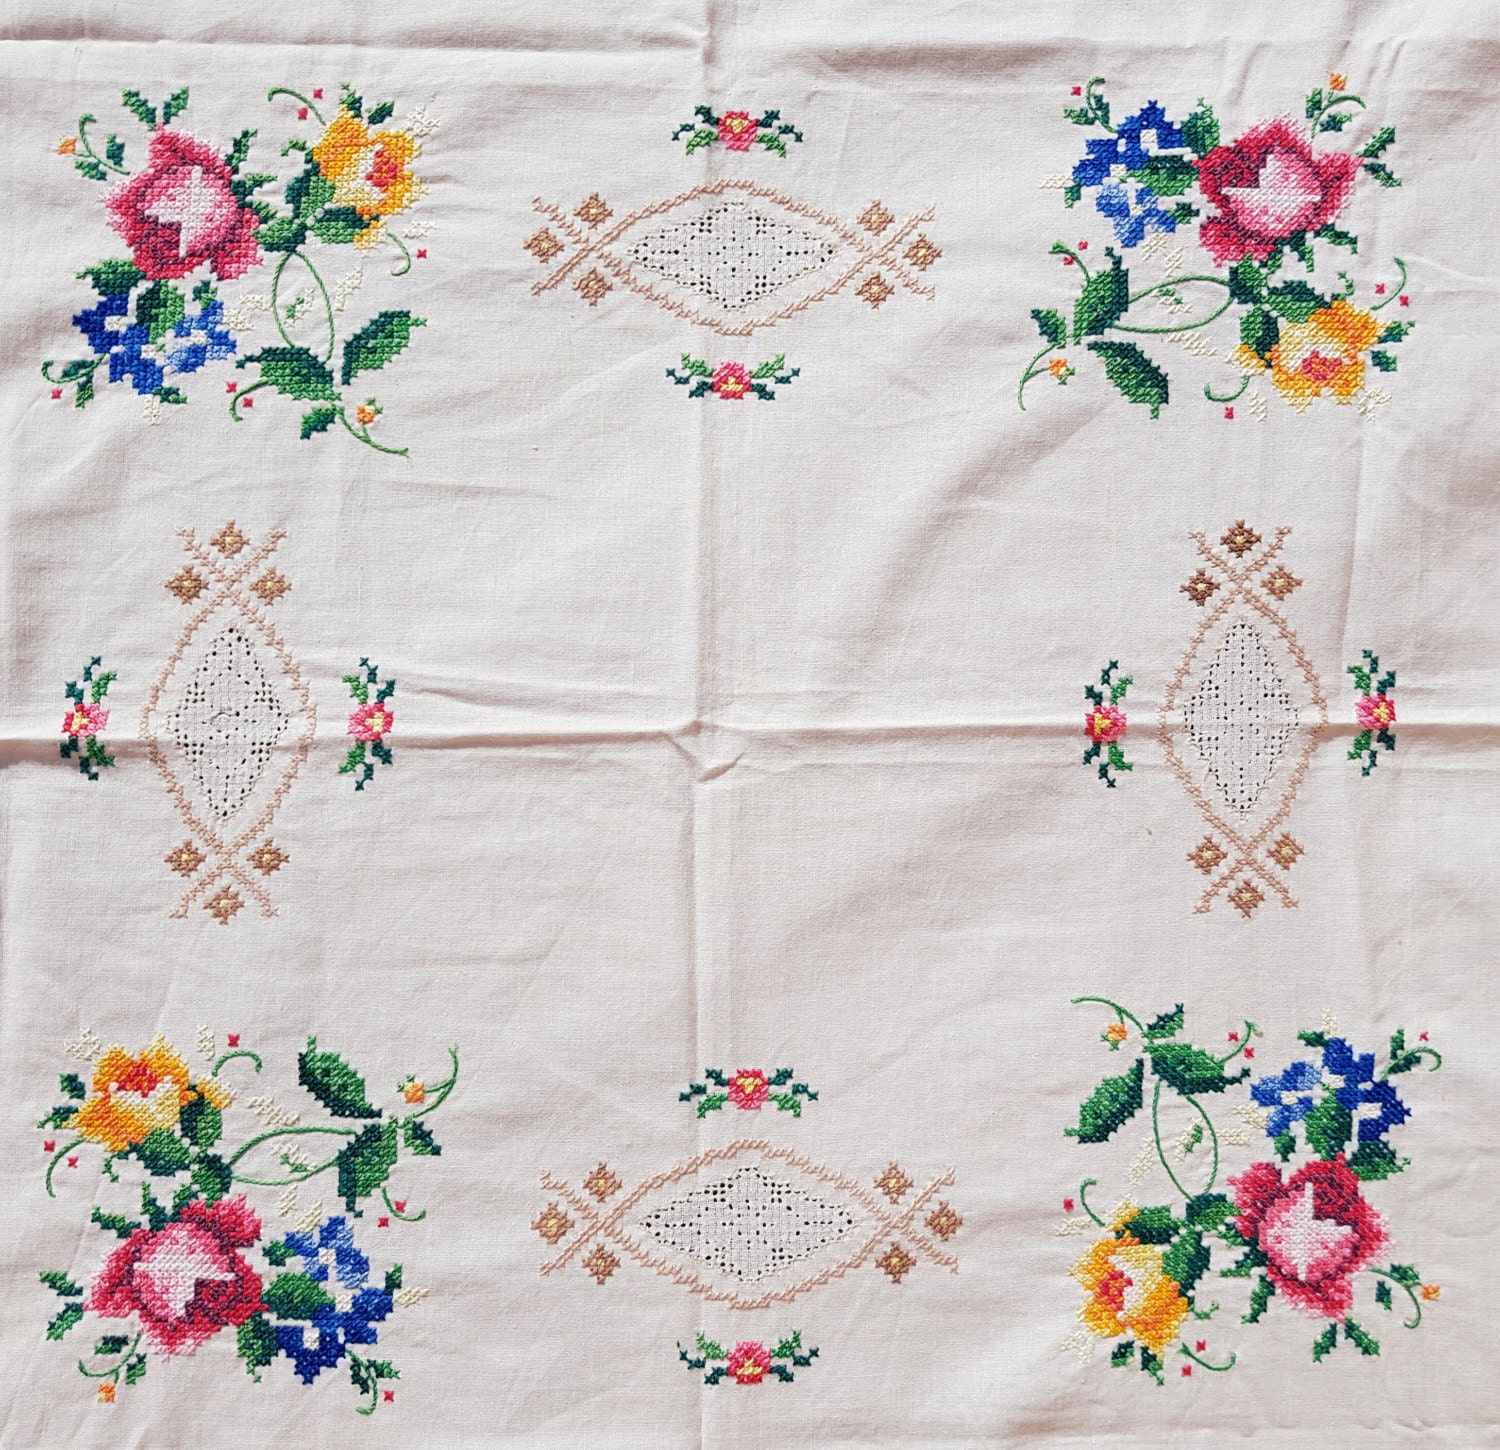 Antique hand embroidery cotton tablecloth cross stitch floral